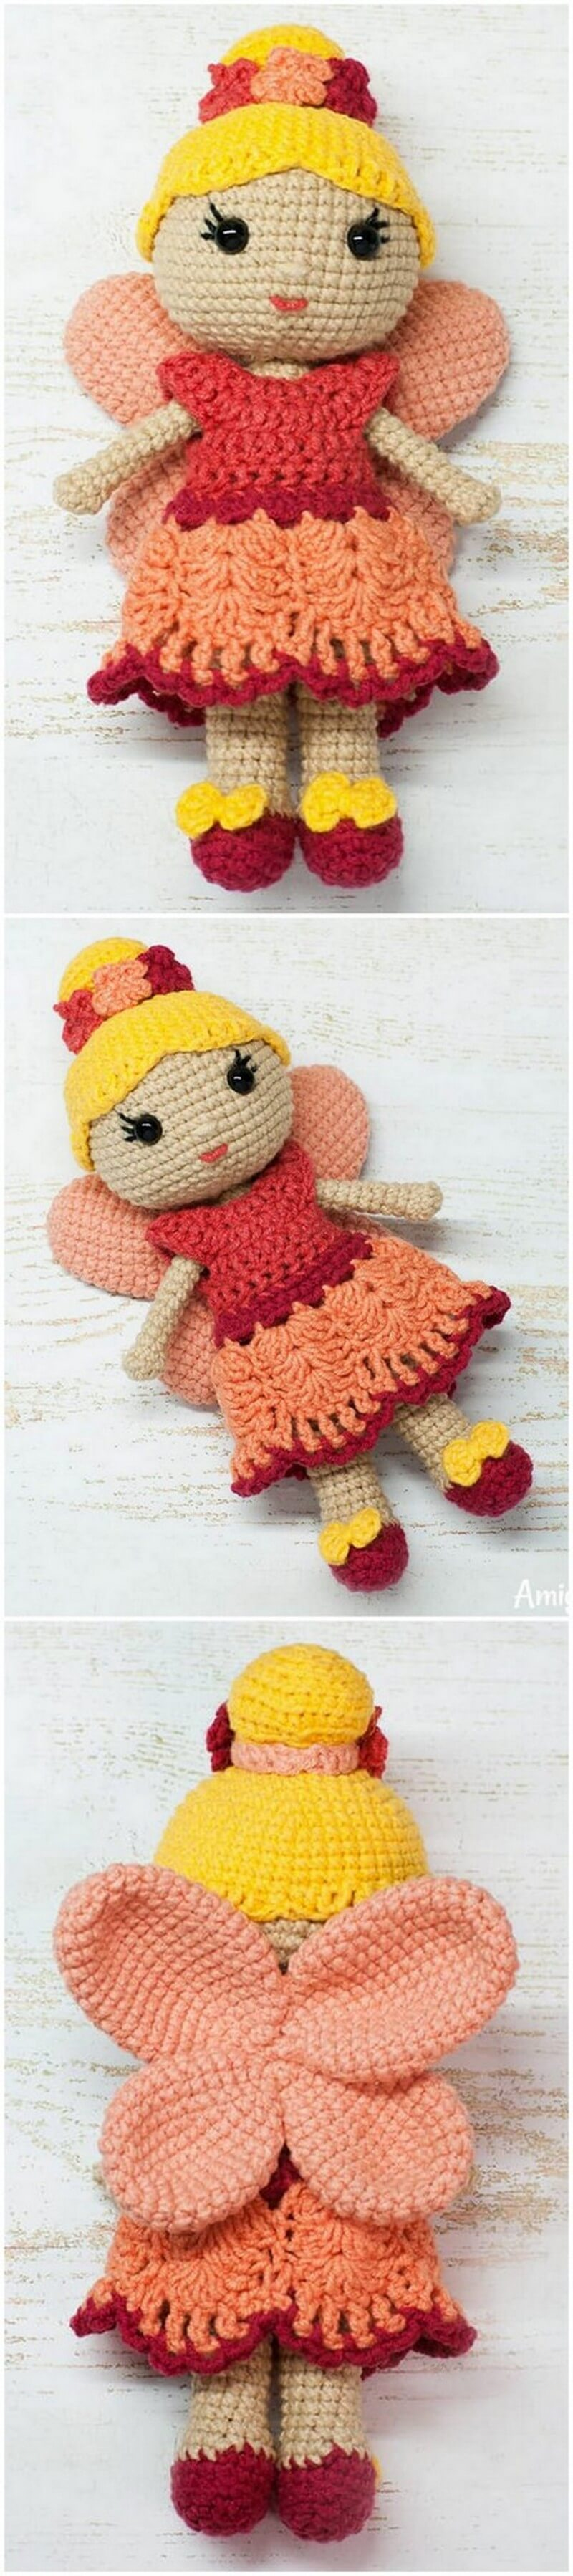 Crochet Amigurumi Doll Pattern (42)